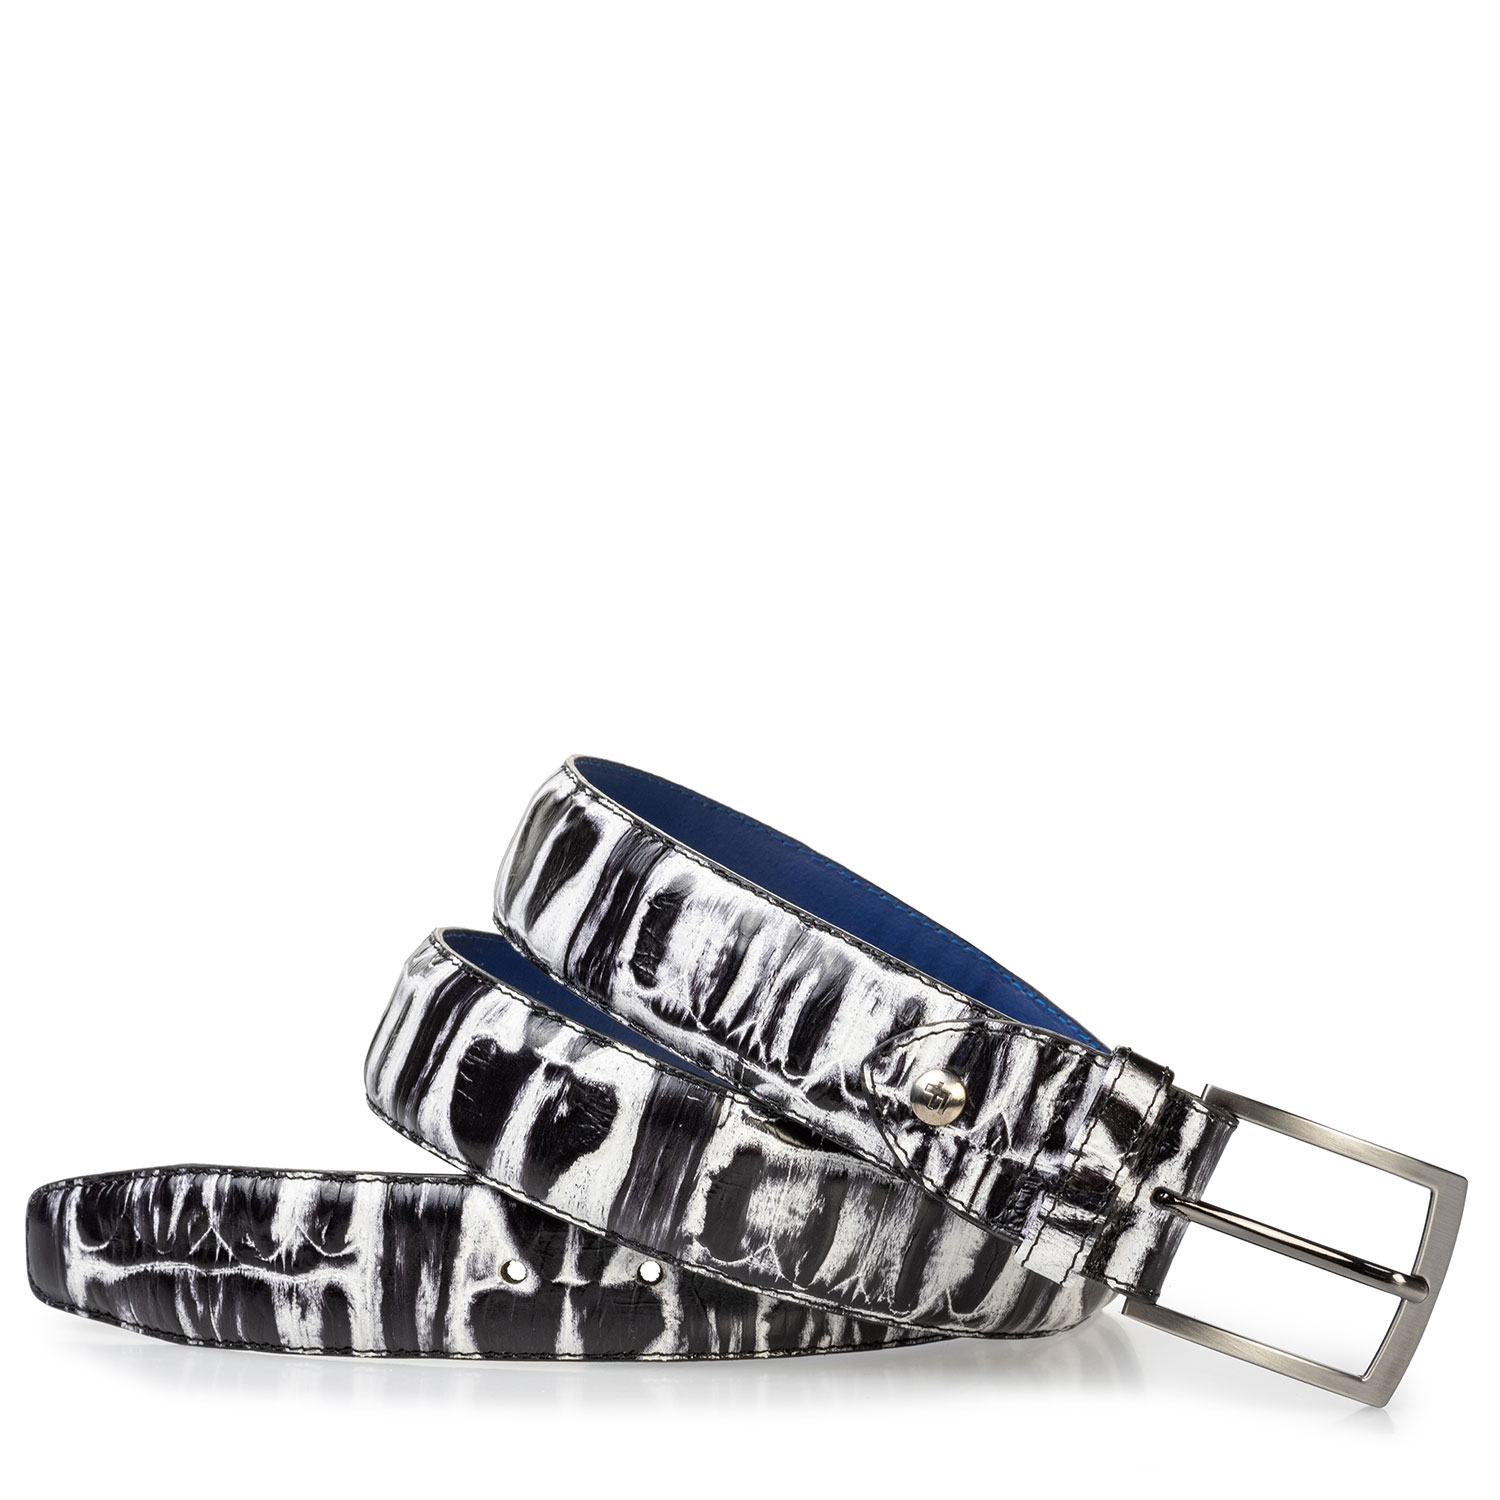 75203/28 - Belt black and white croco print